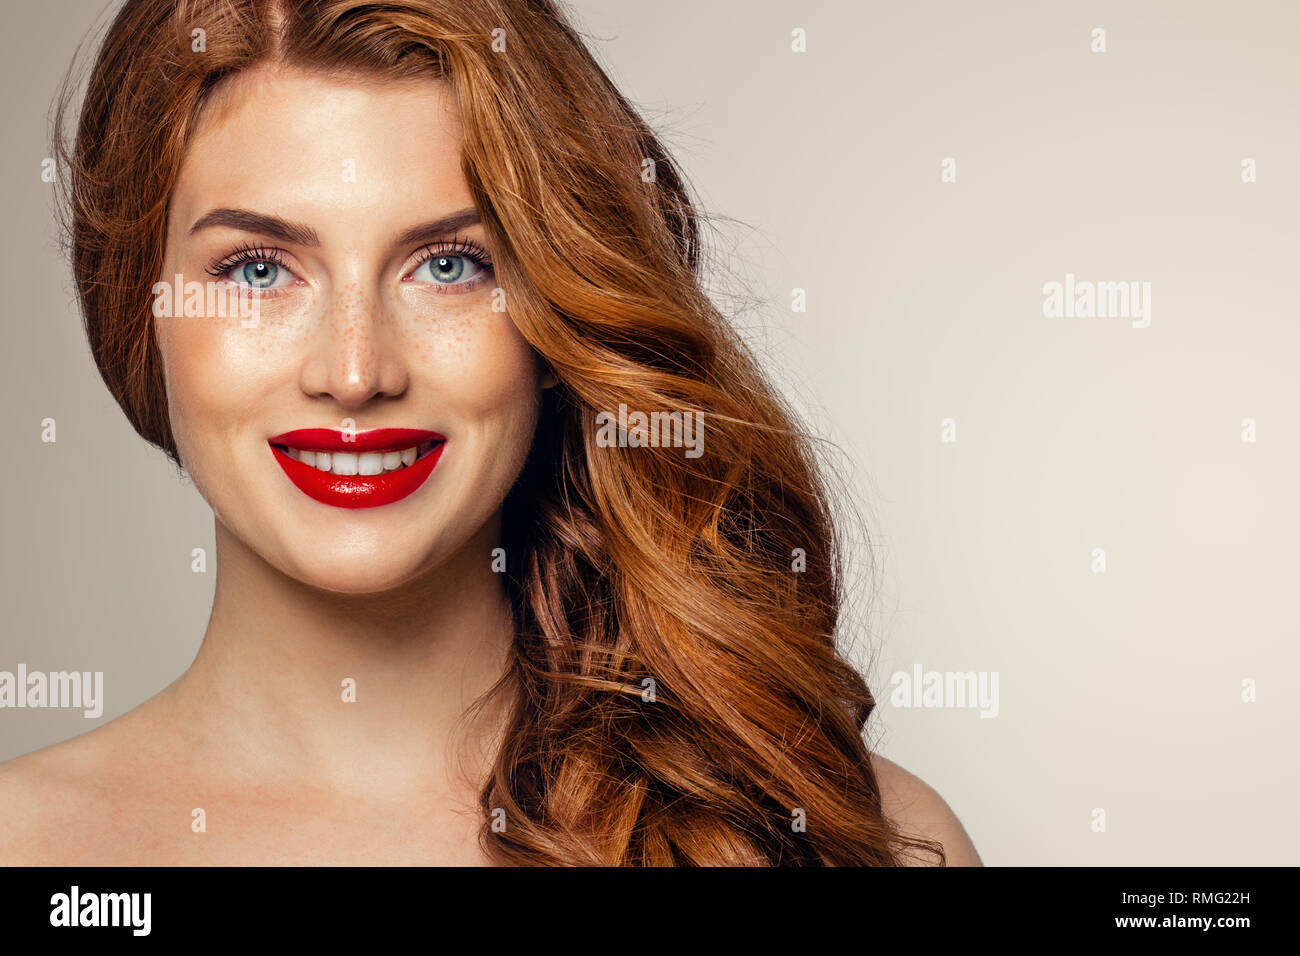 Candid woman with freckles and ginger hair. Natural redhead girl lifestyle  portrait - Stock Image